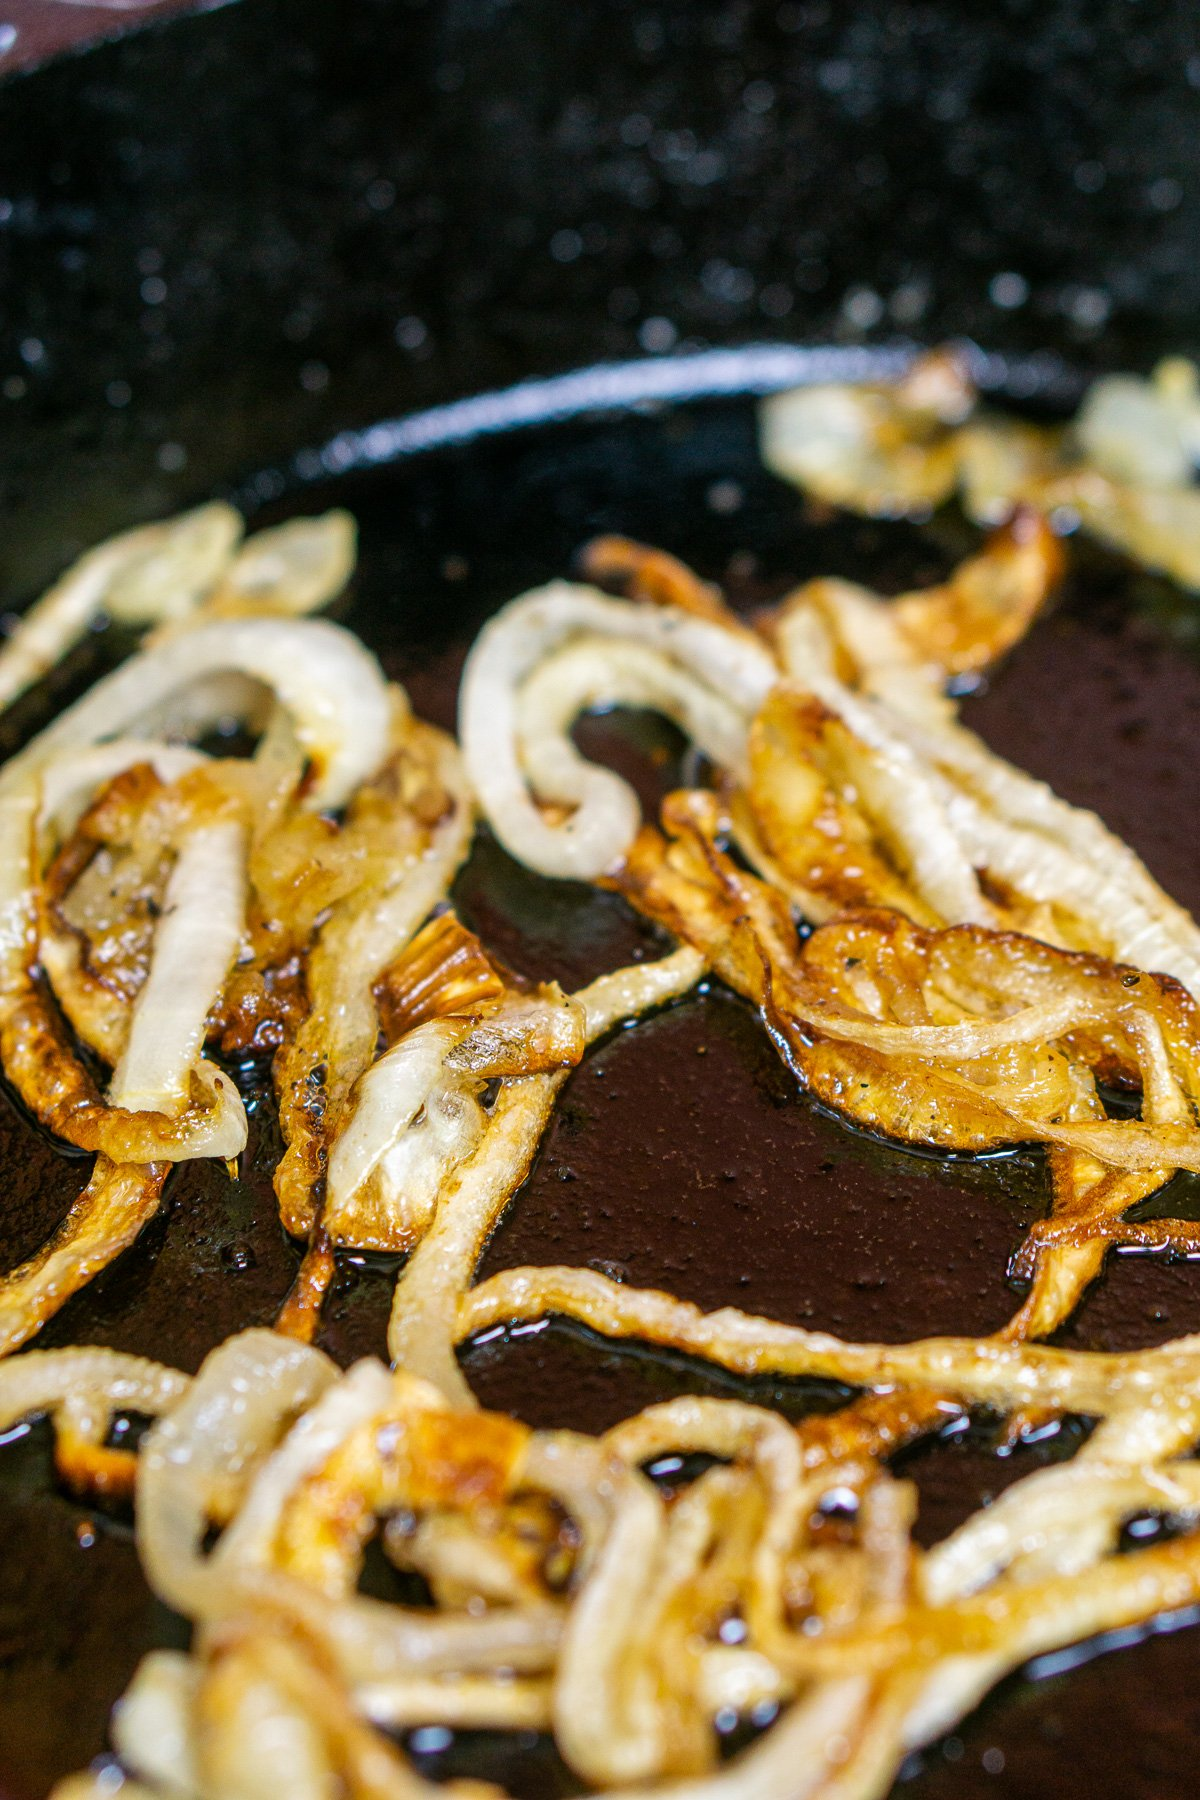 The caramelized onions in a cast-iron skillet after cooking.